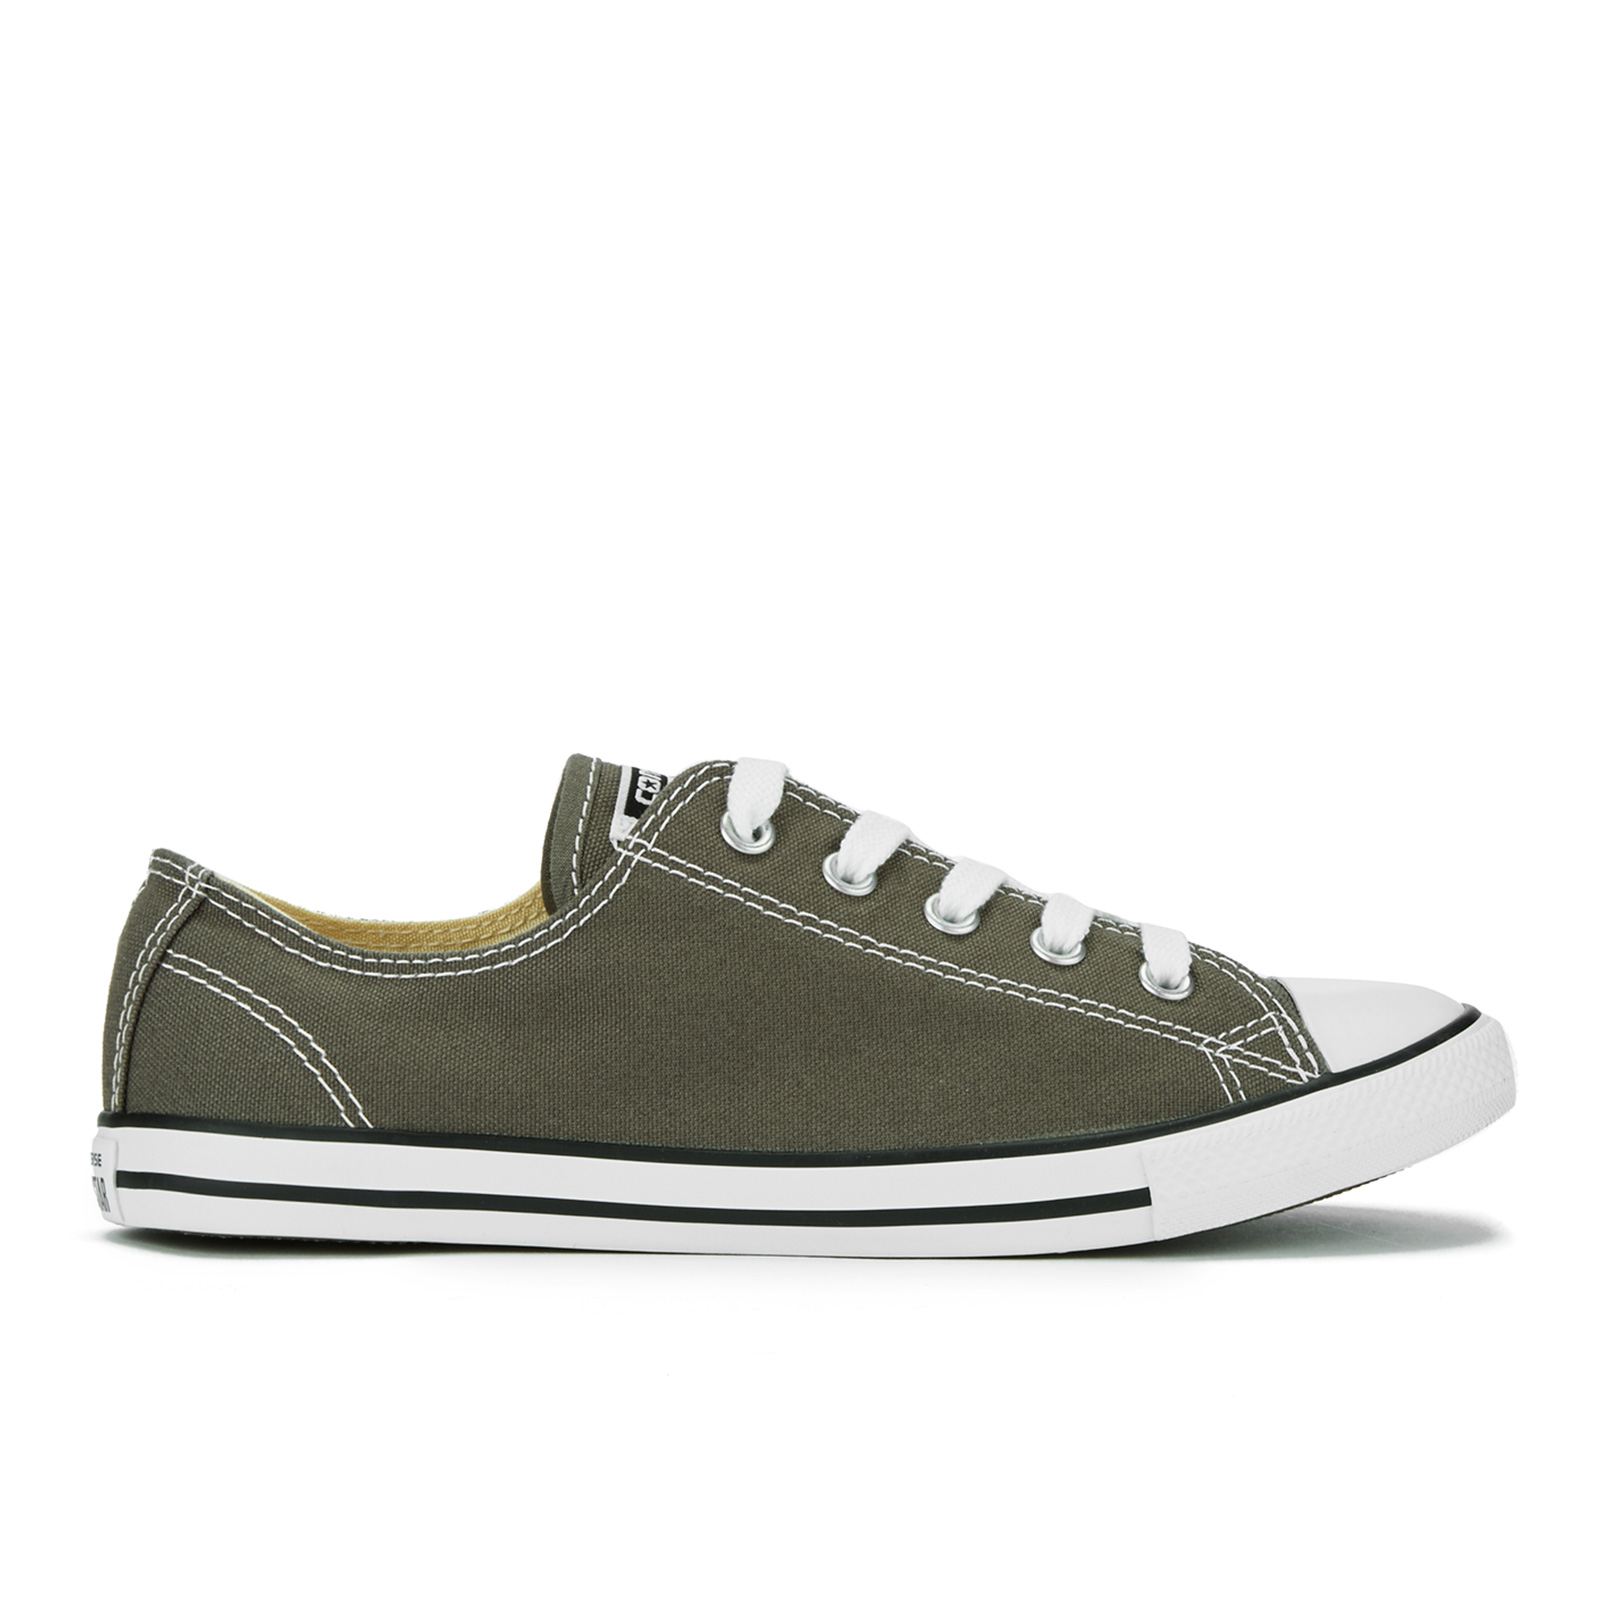 ee398cd41ae7 Converse Women s Chuck Taylor All Star Dainty Ox Trainers - Charcoal Womens  Footwear